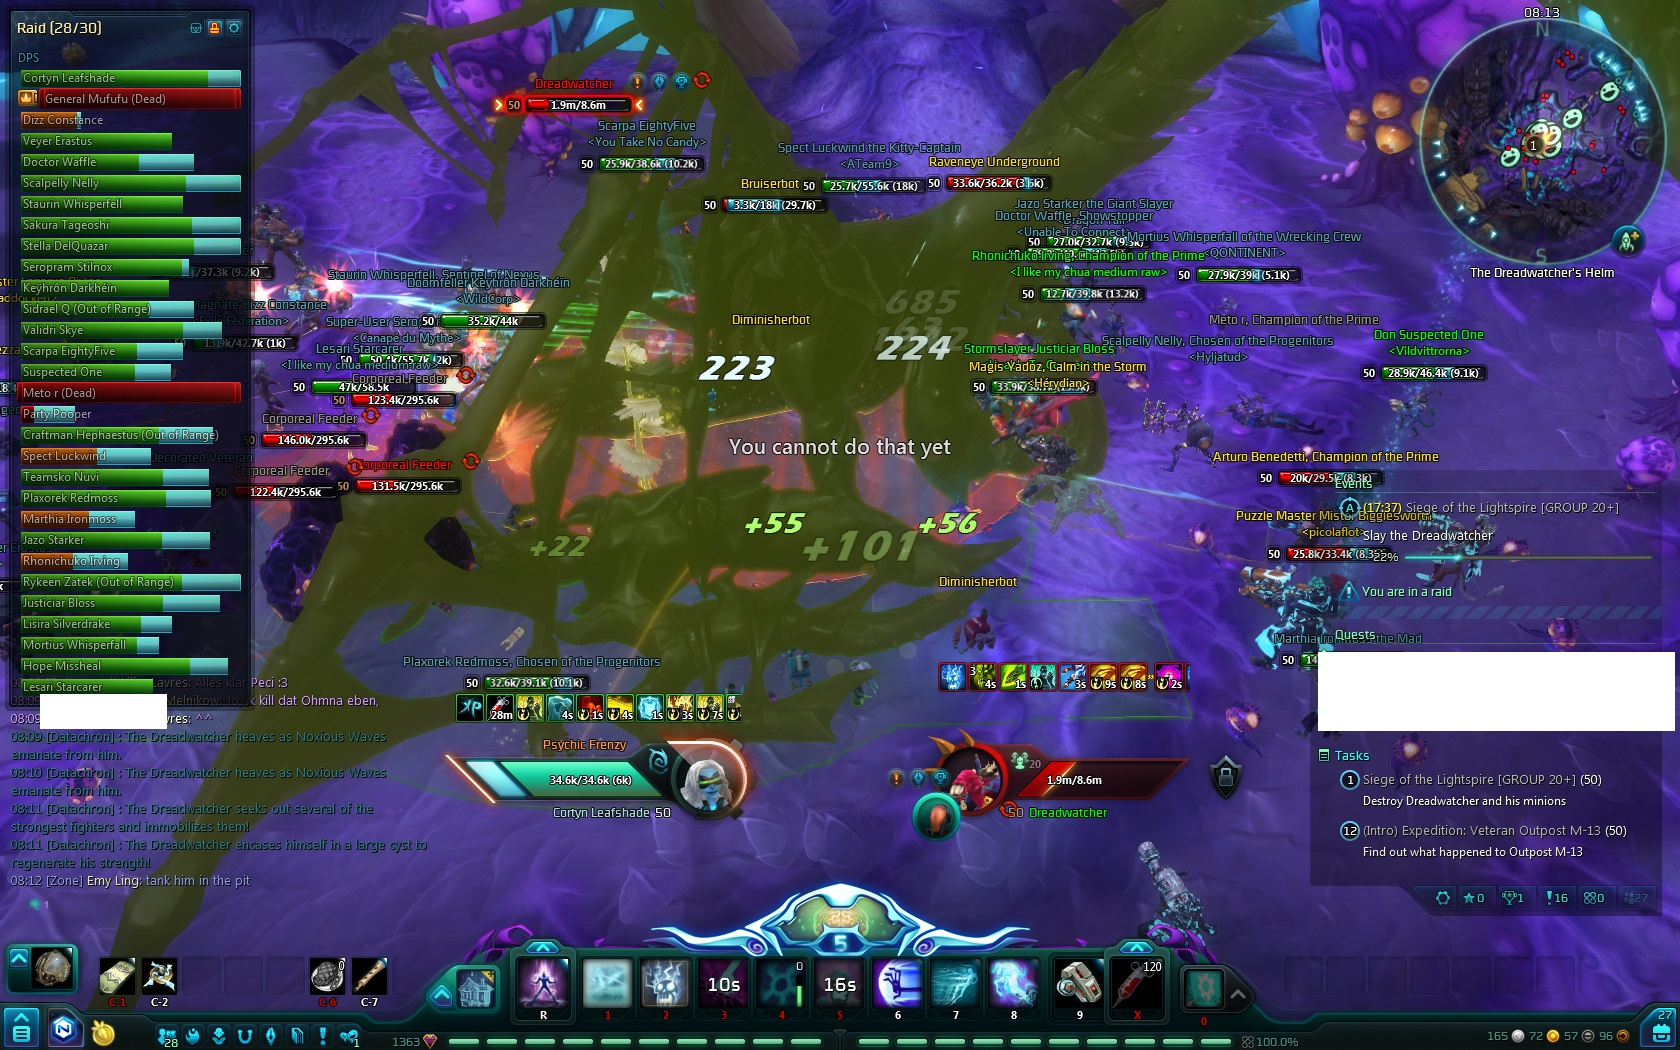 how to open wildstar path